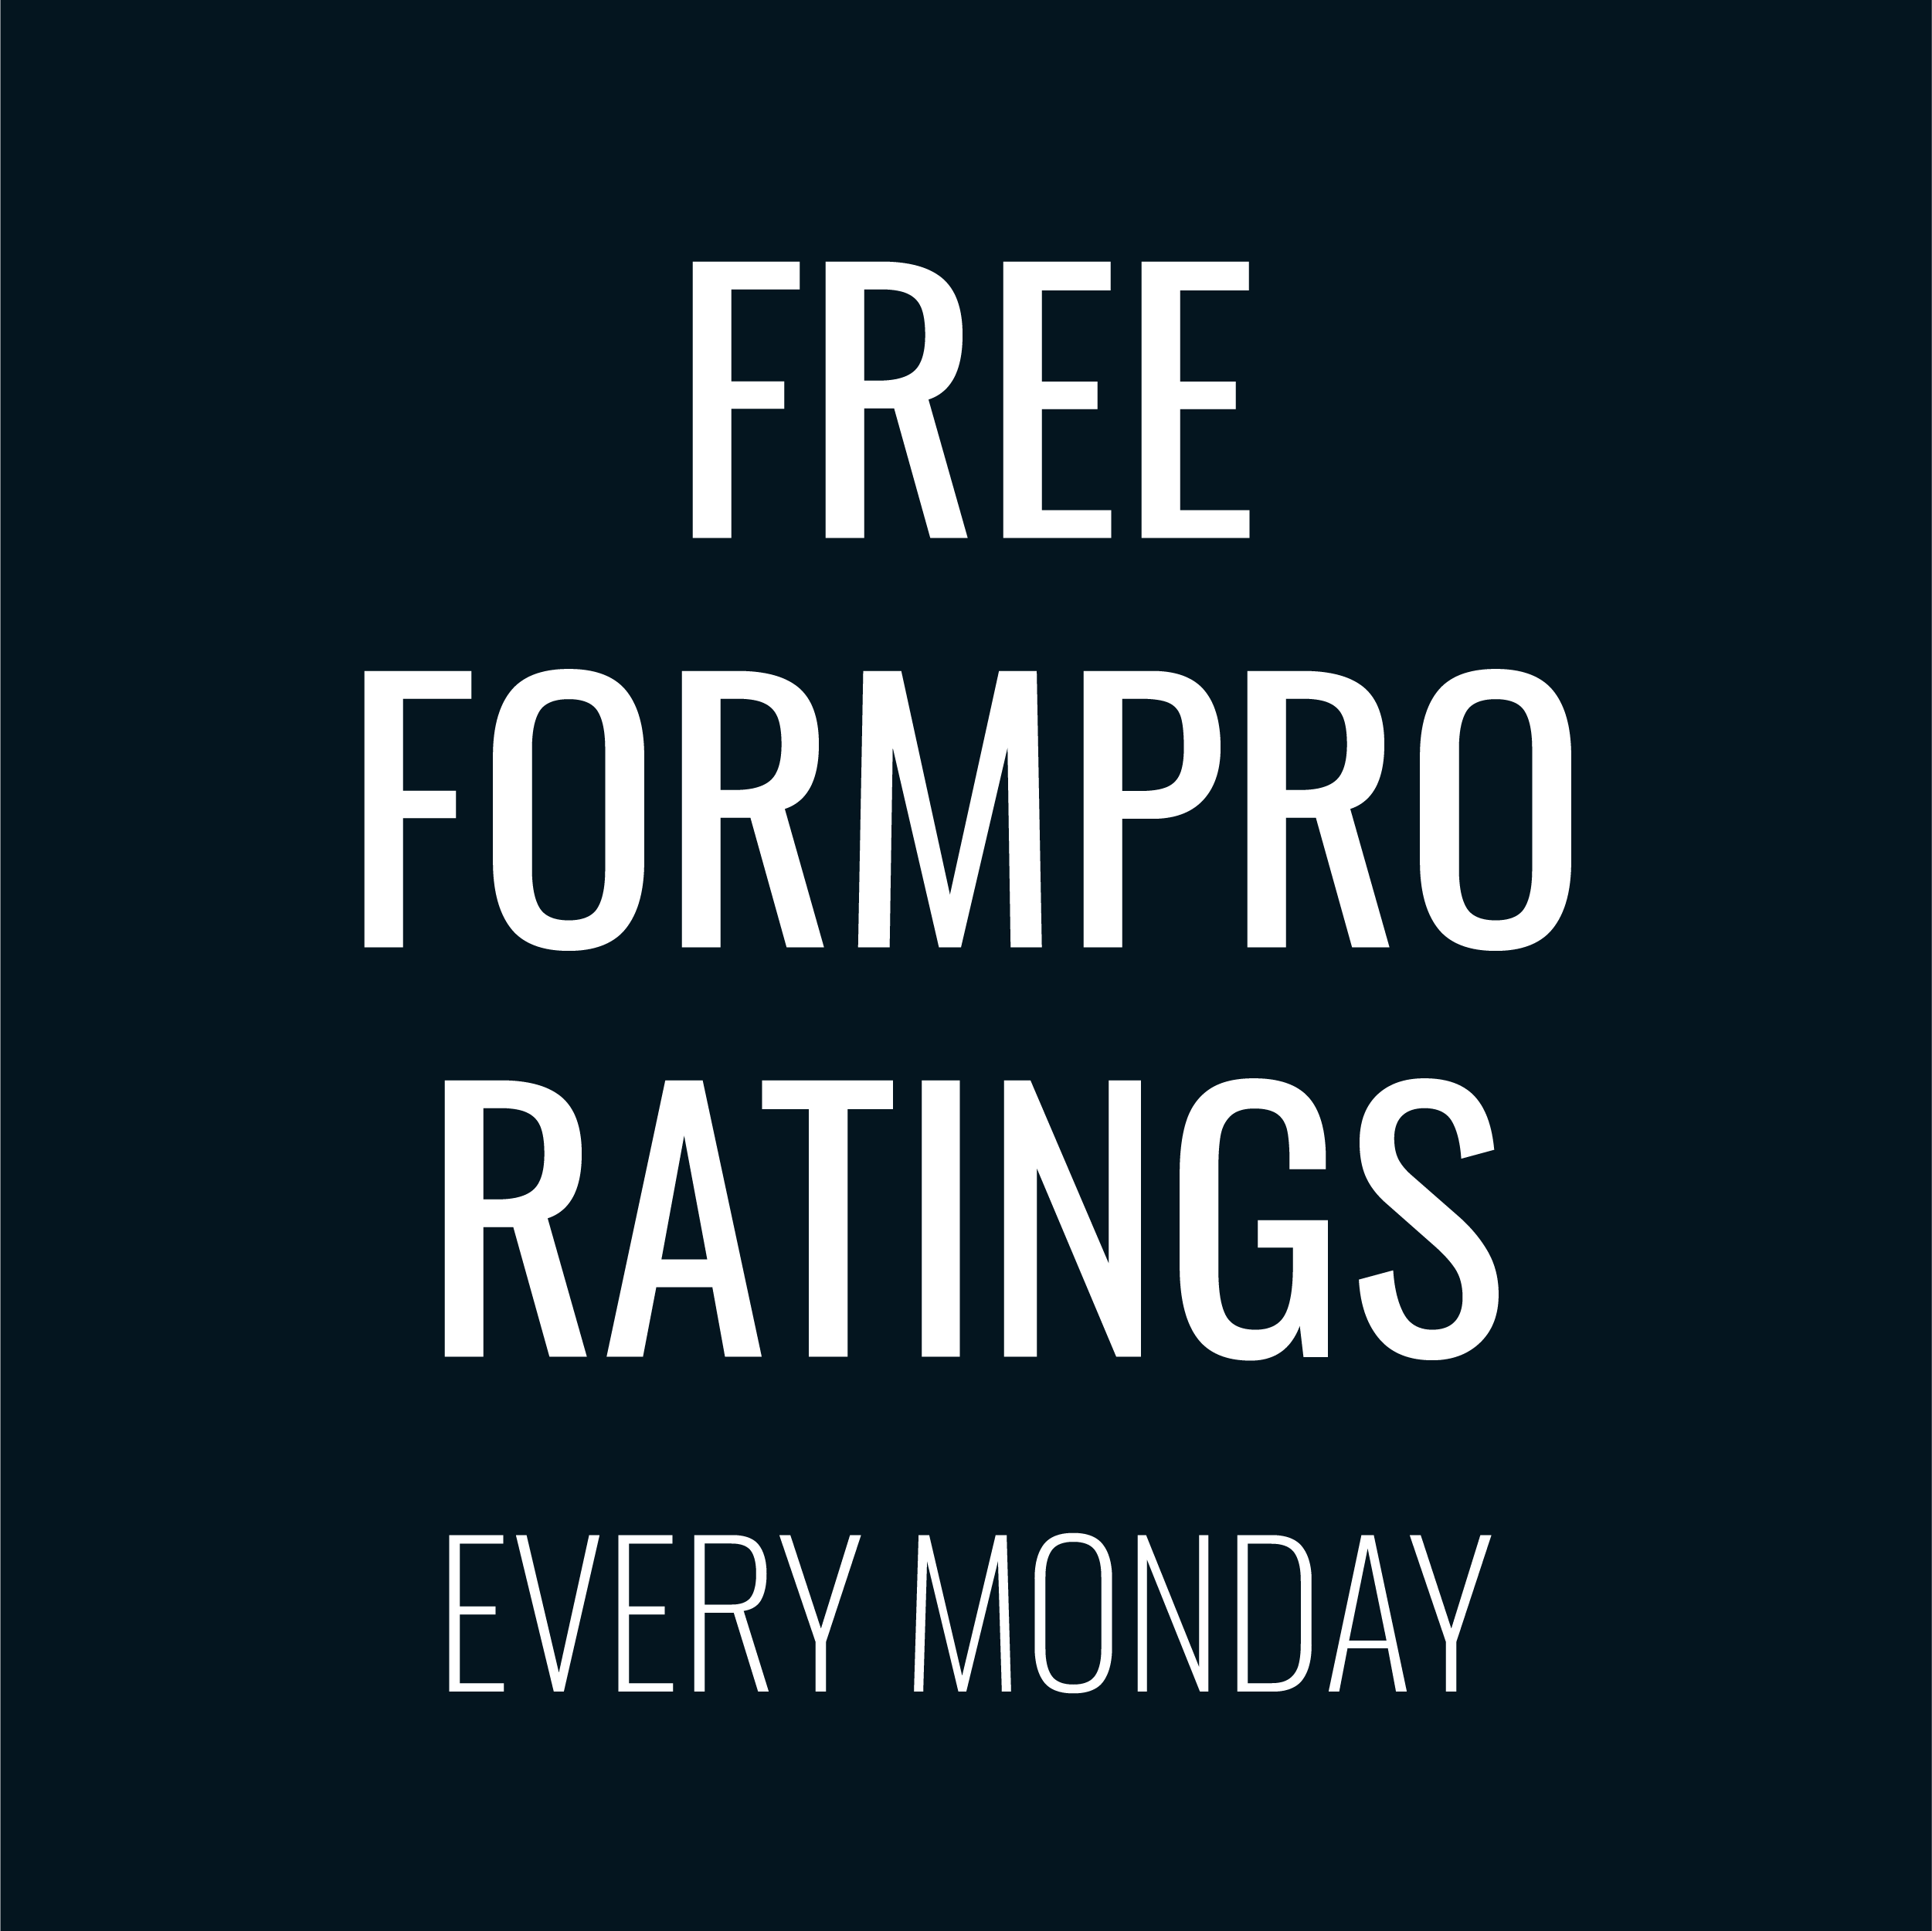 Free Greyhound Ratings 24 February 2020